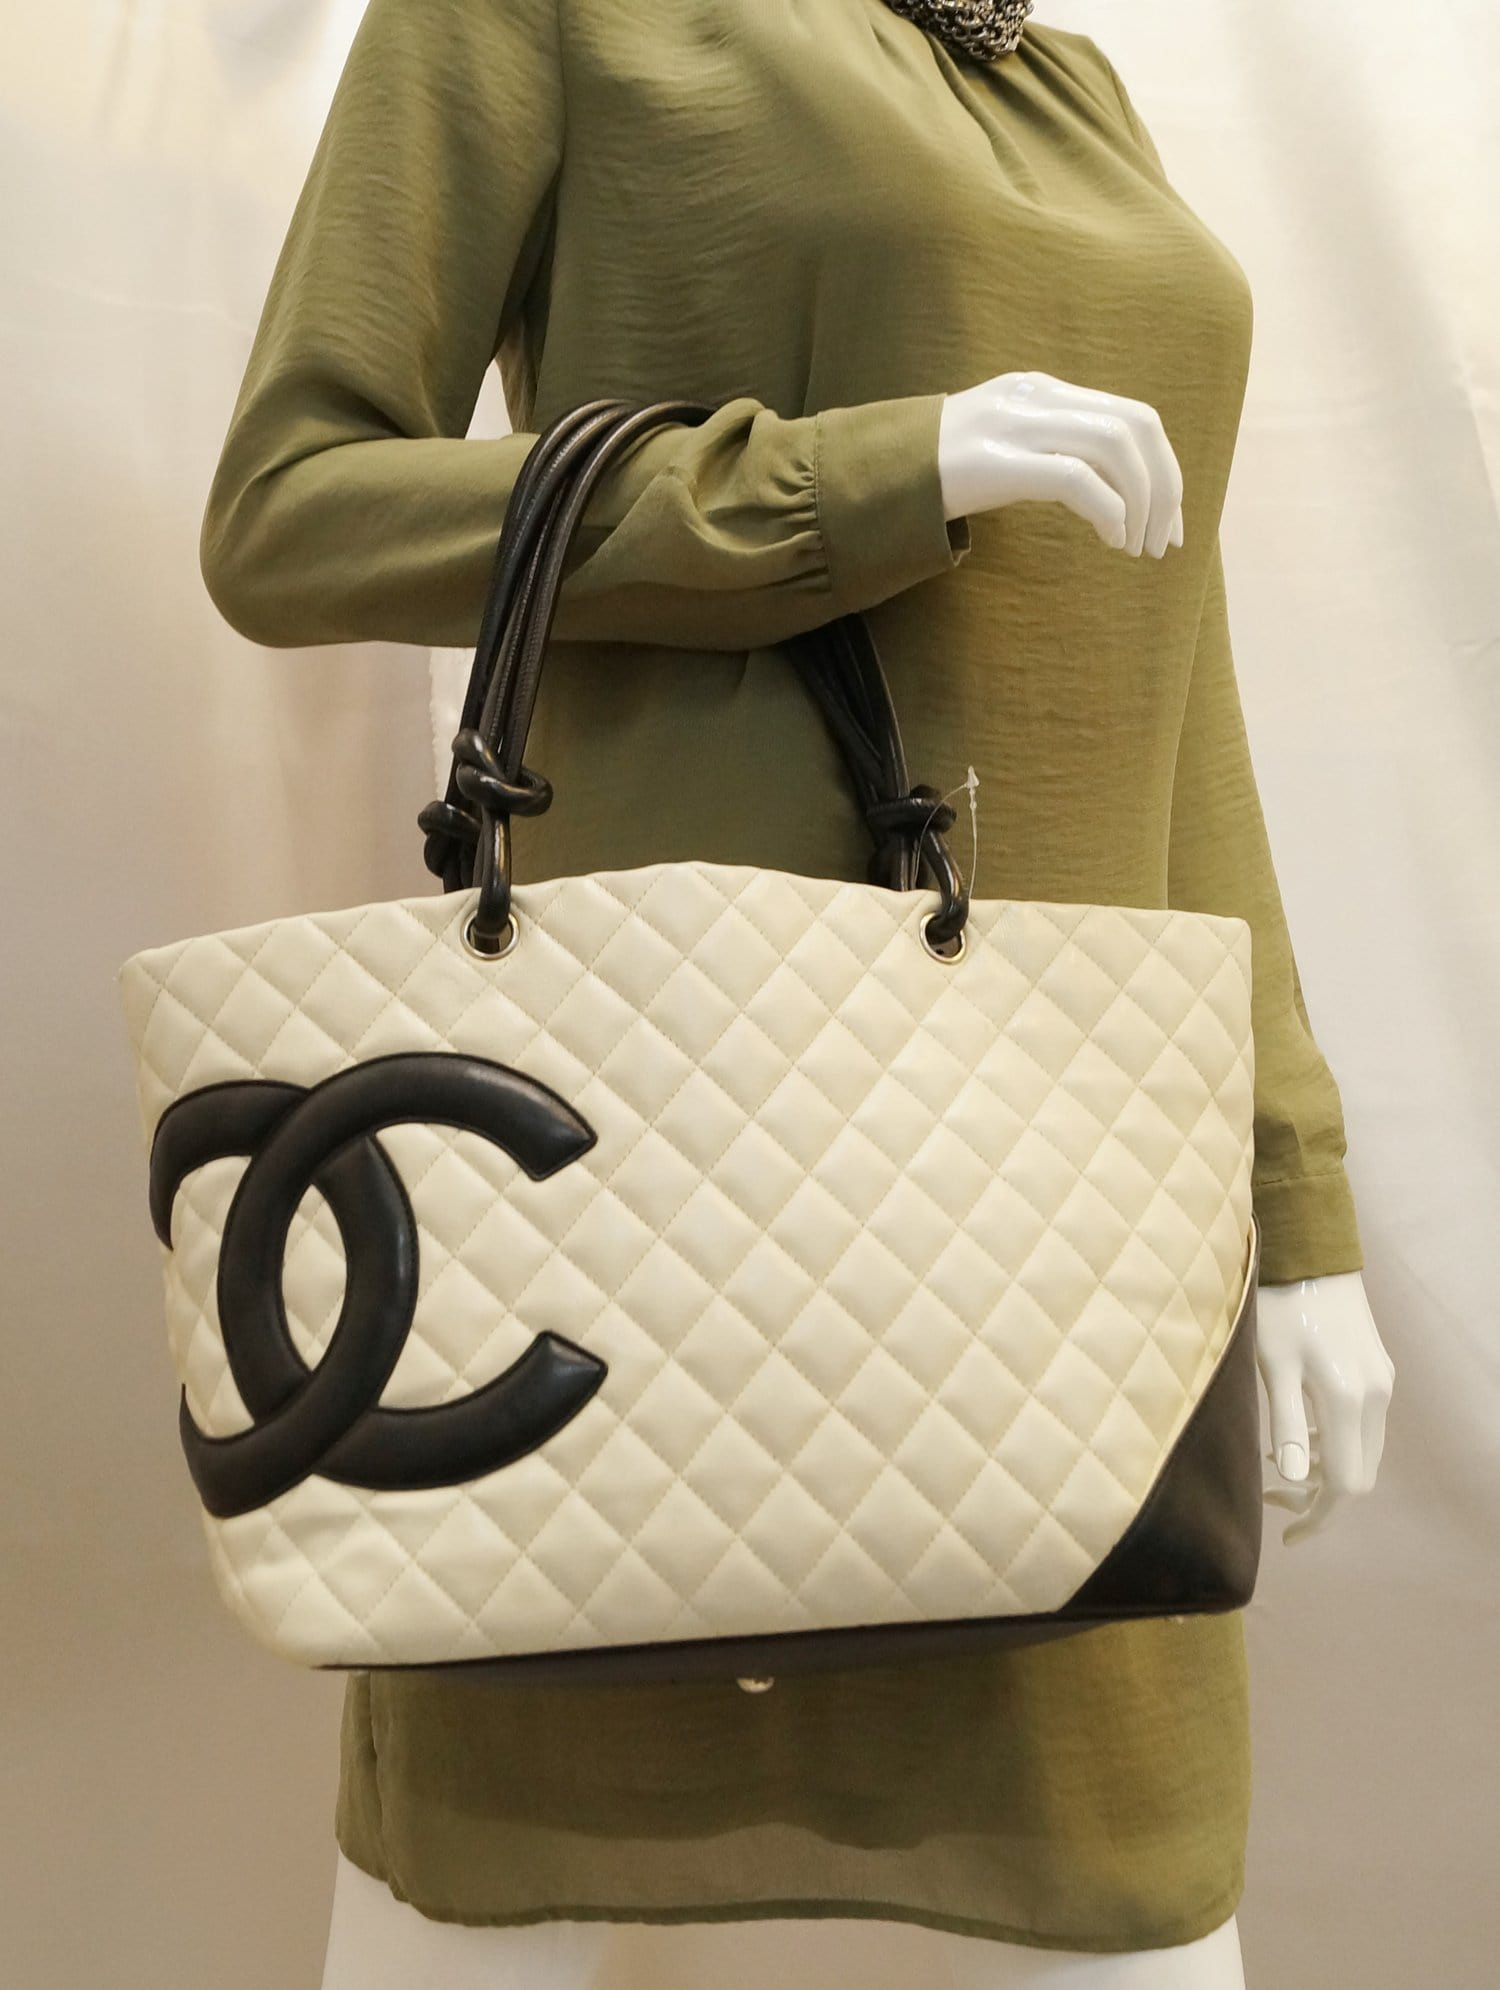 2a9af6c993120a CHANEL White Quilted Leather Ligne Cambon Tote Bag